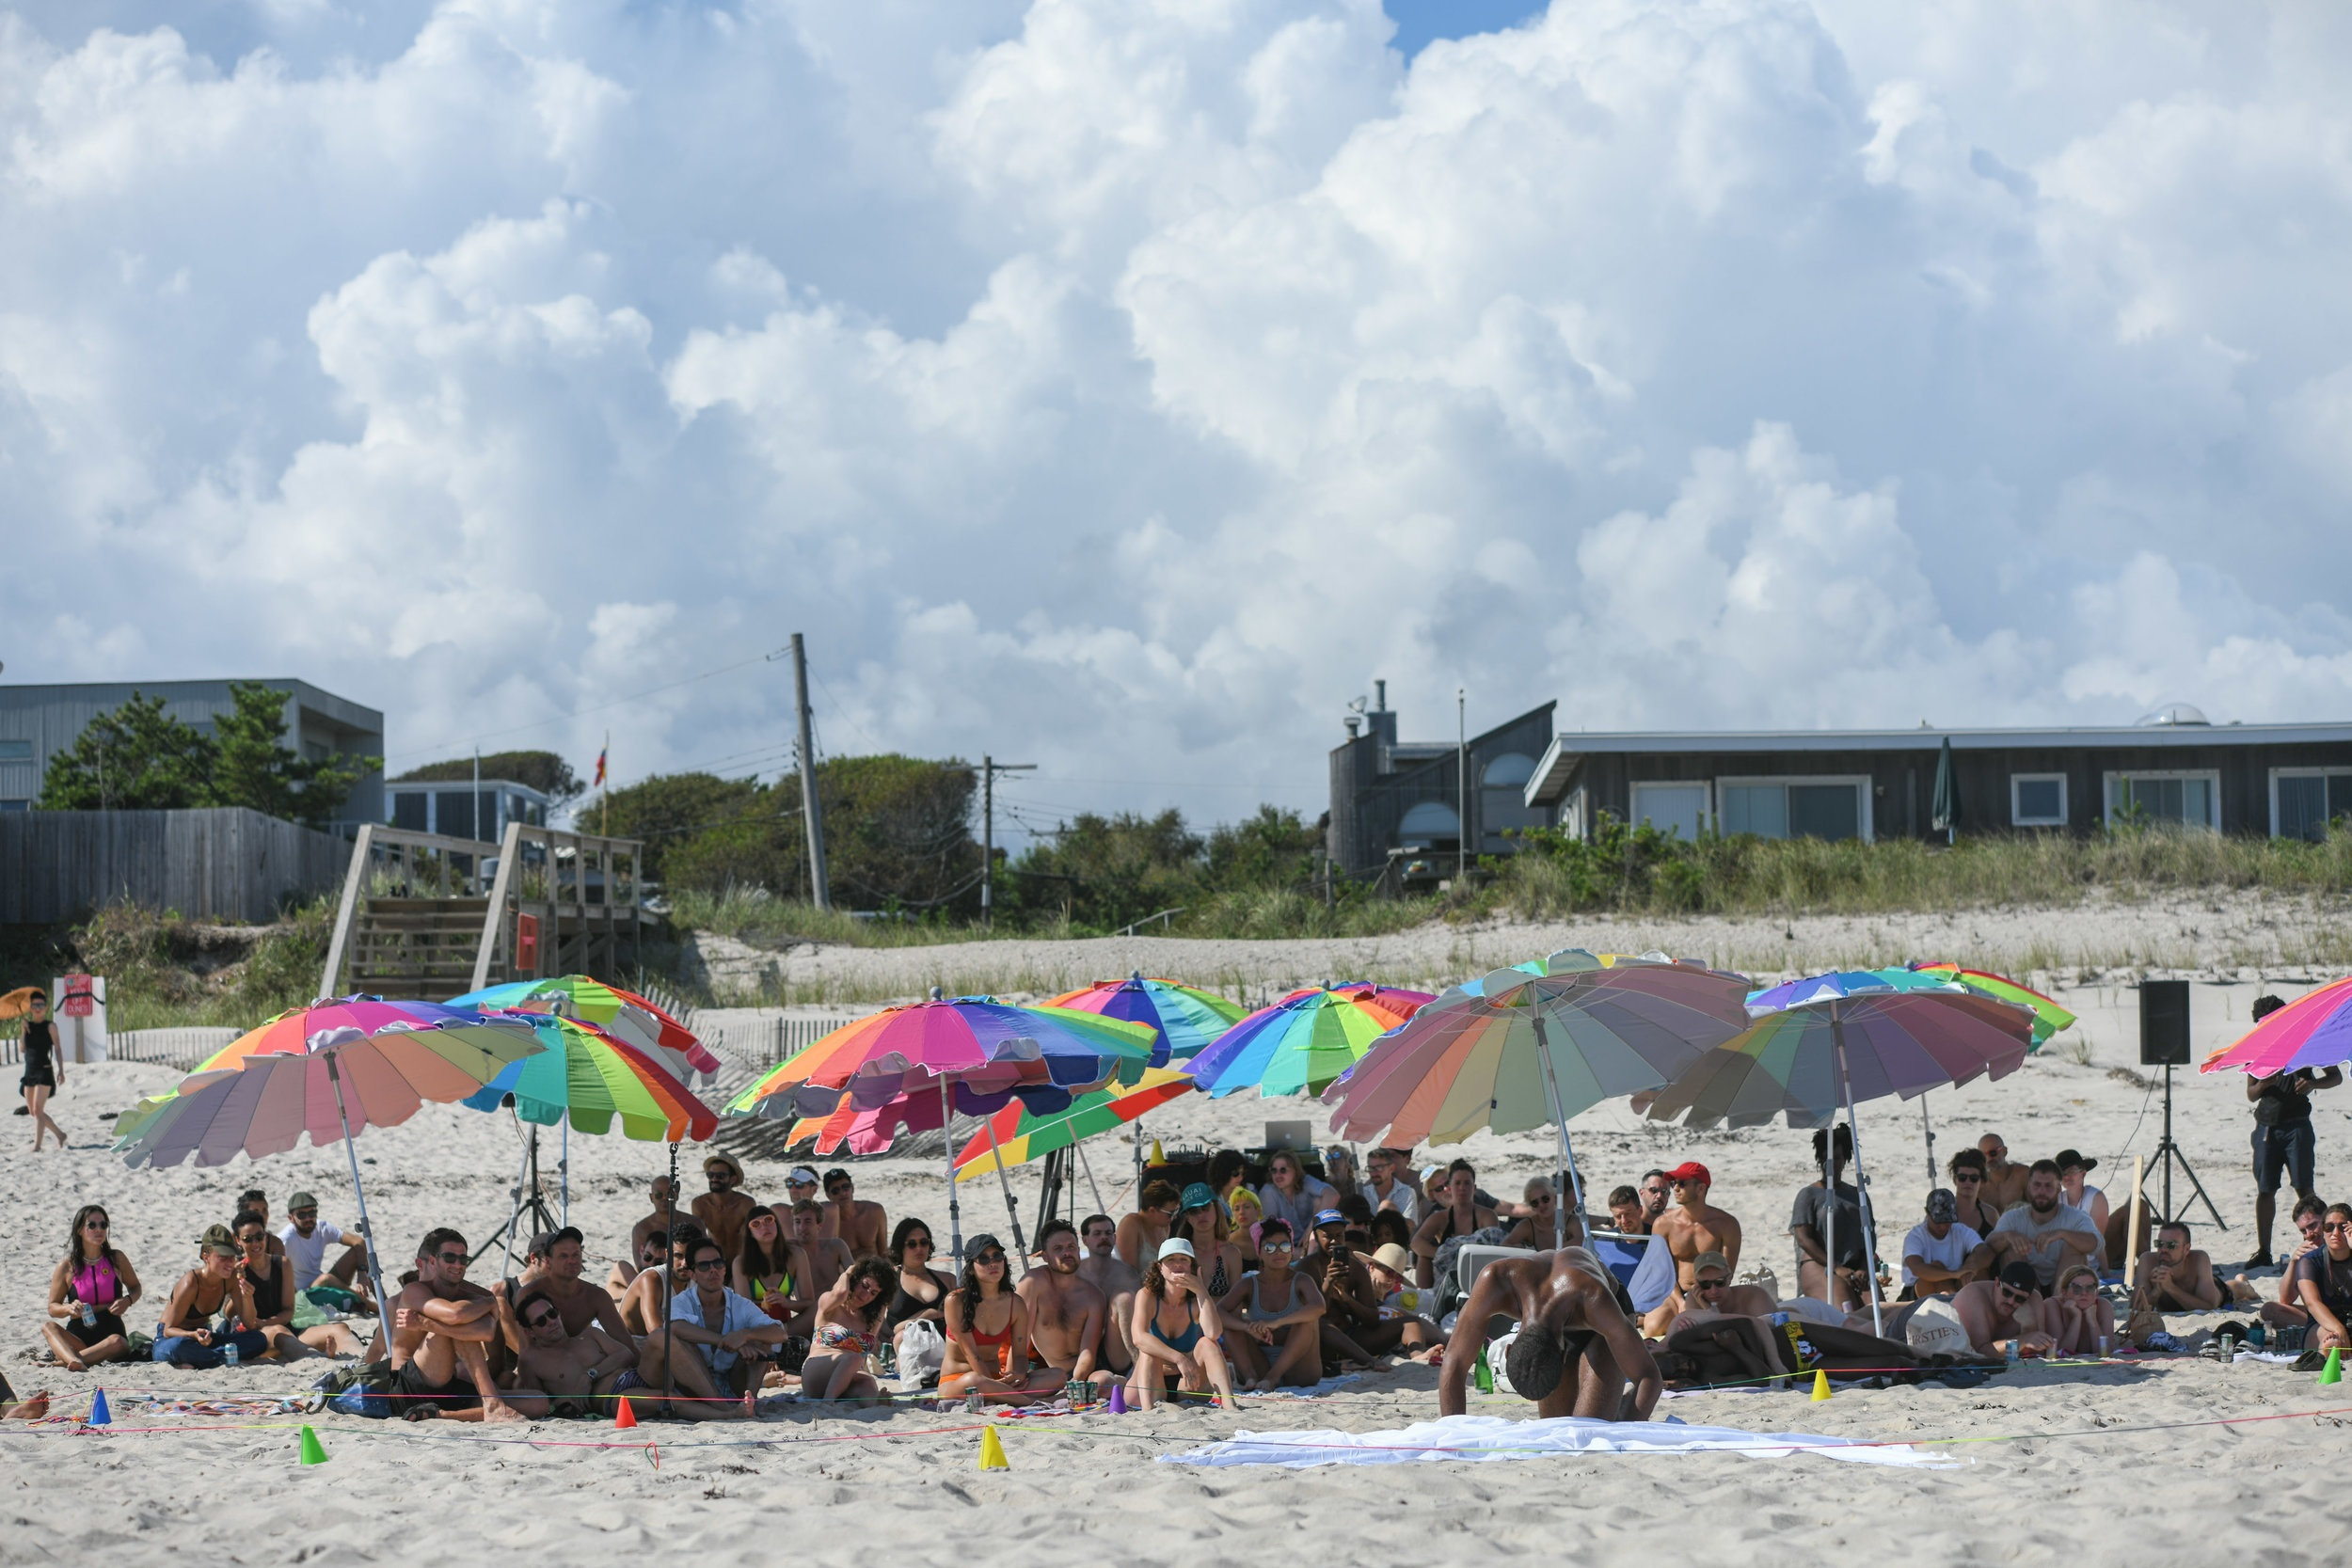 I crawl toward the camera, digging my hands and knees into the sand, as the crowd watches under an arrangement of colorful beach umbrellas. Photo by Nir Arieli